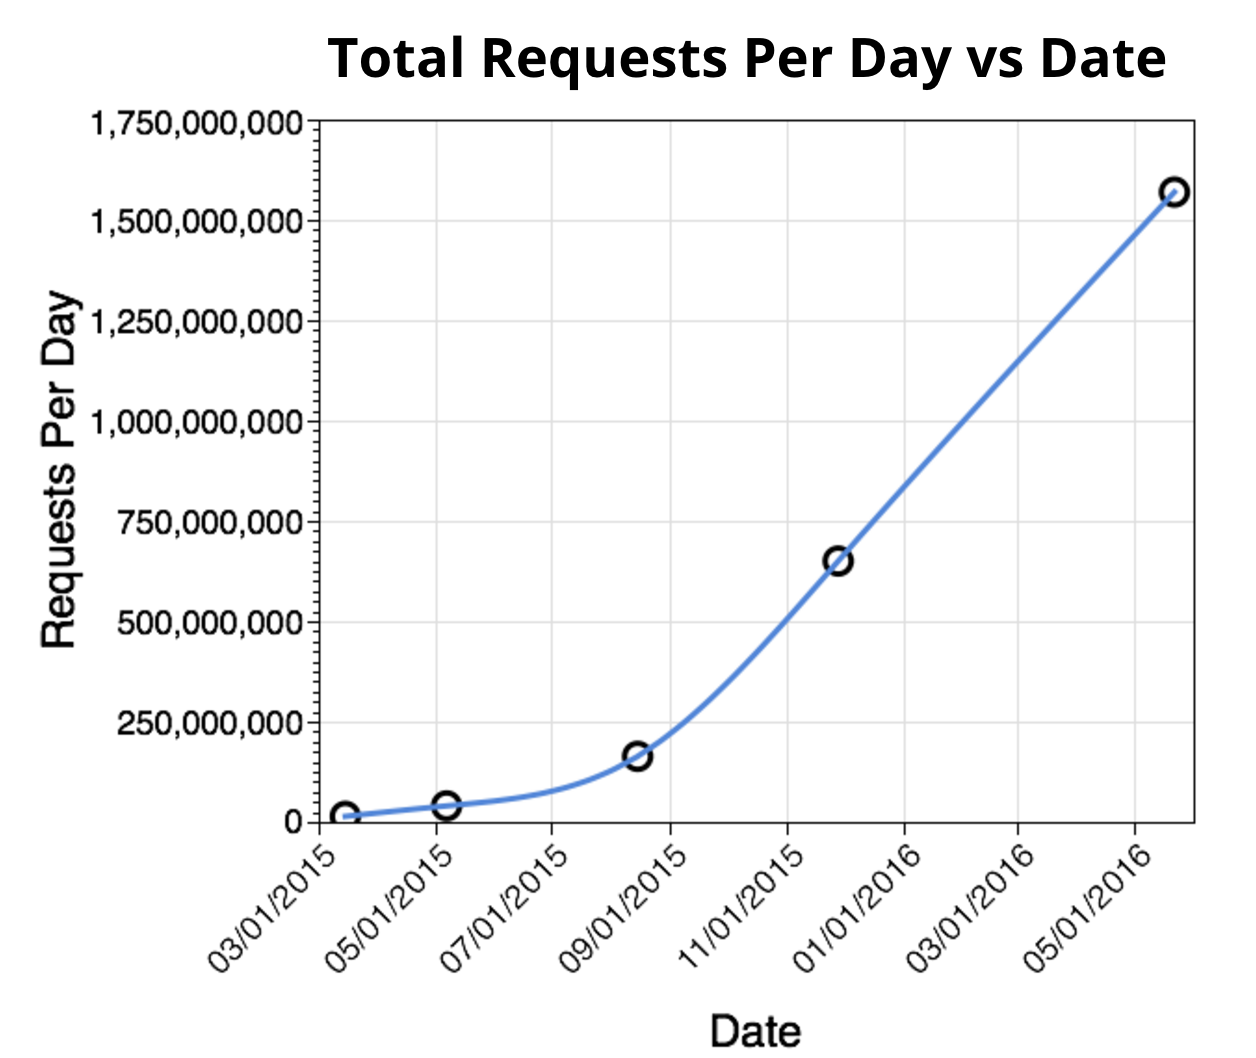 total requests per day growth over time